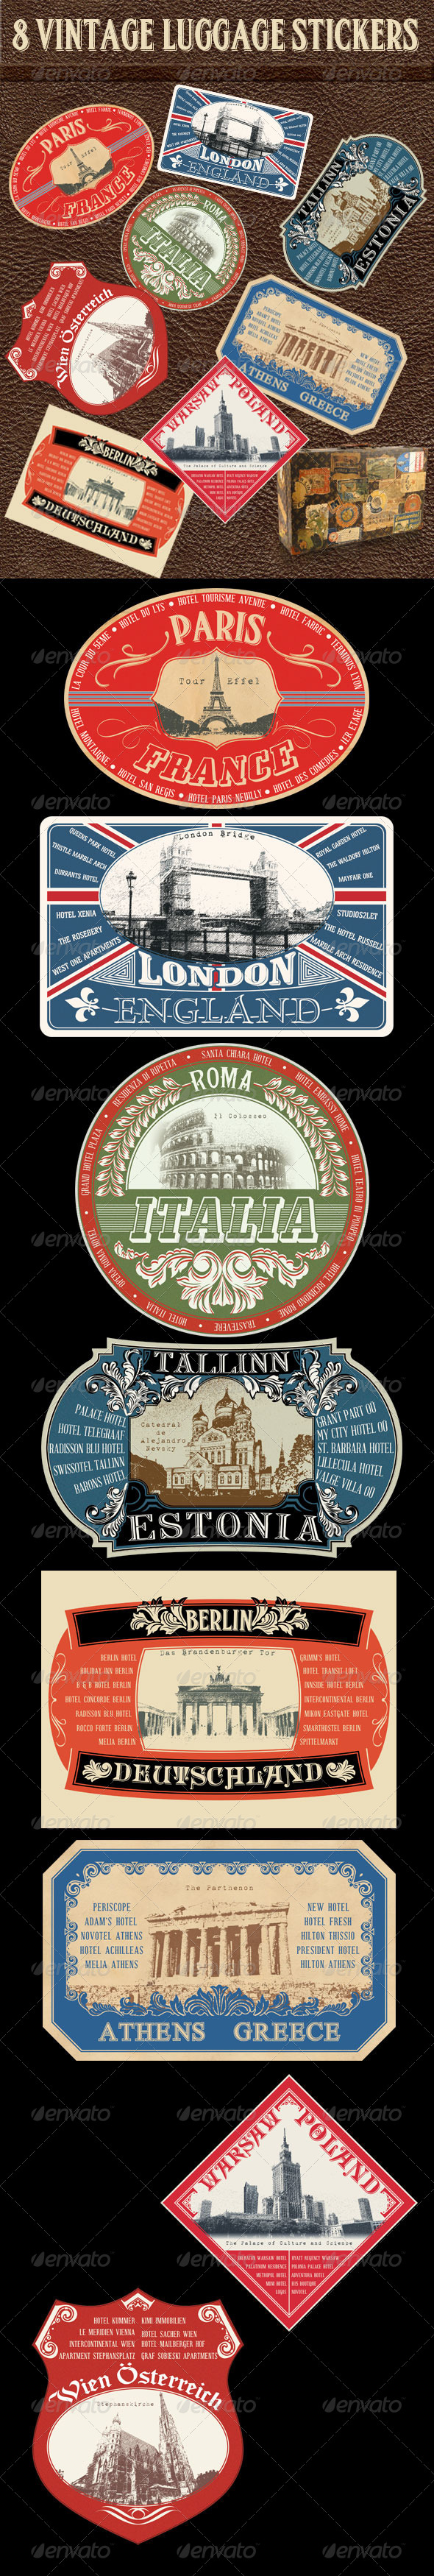 GraphicRiver 8 Vintage Luggage Stickers 5562736